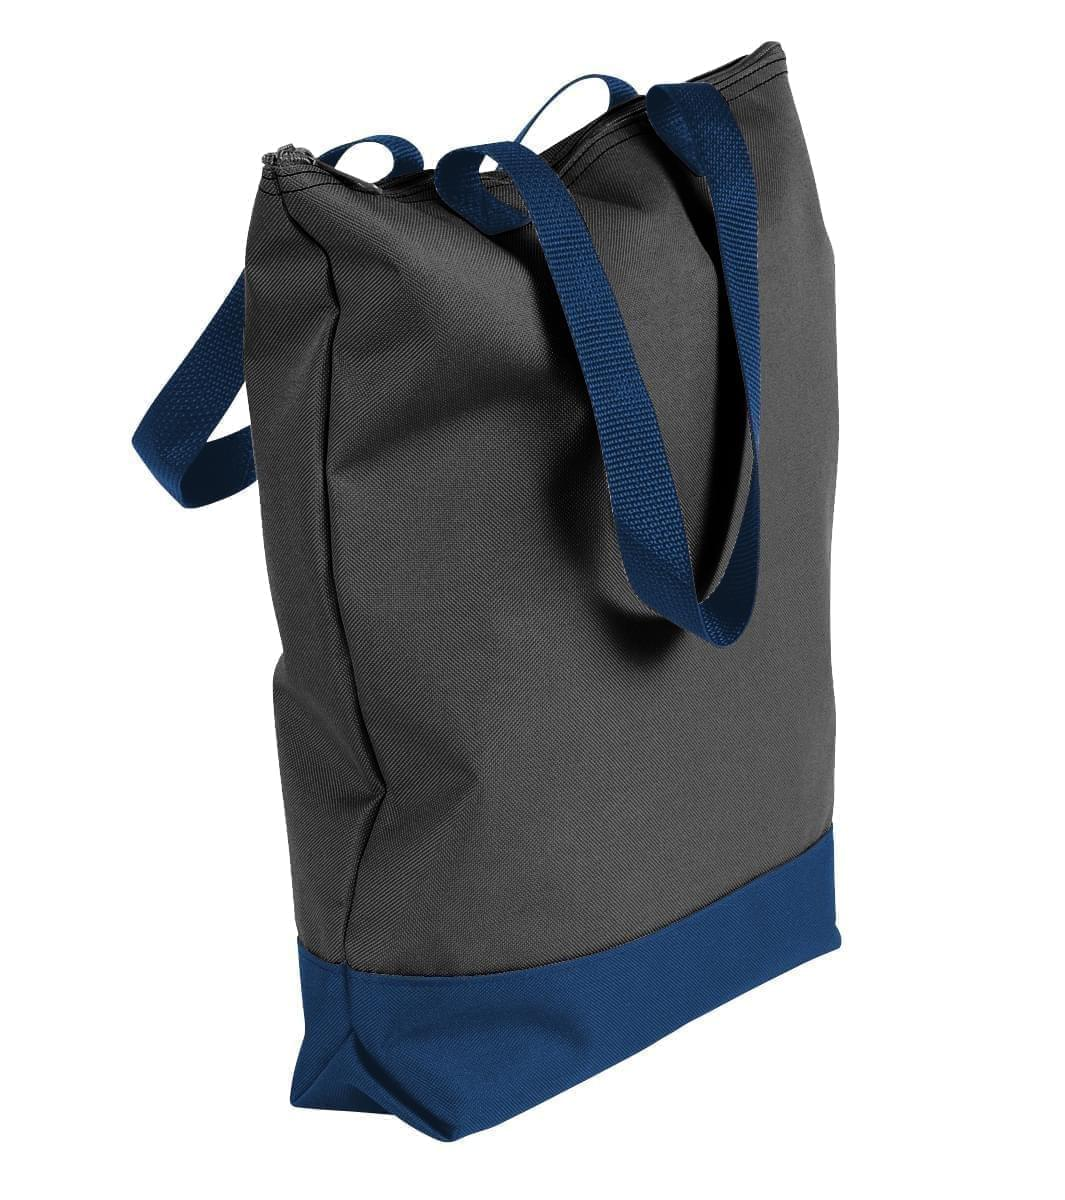 USA Made Canvas Portfolio Tote Bags, Black-Navy, 1AAMX1UAHZ